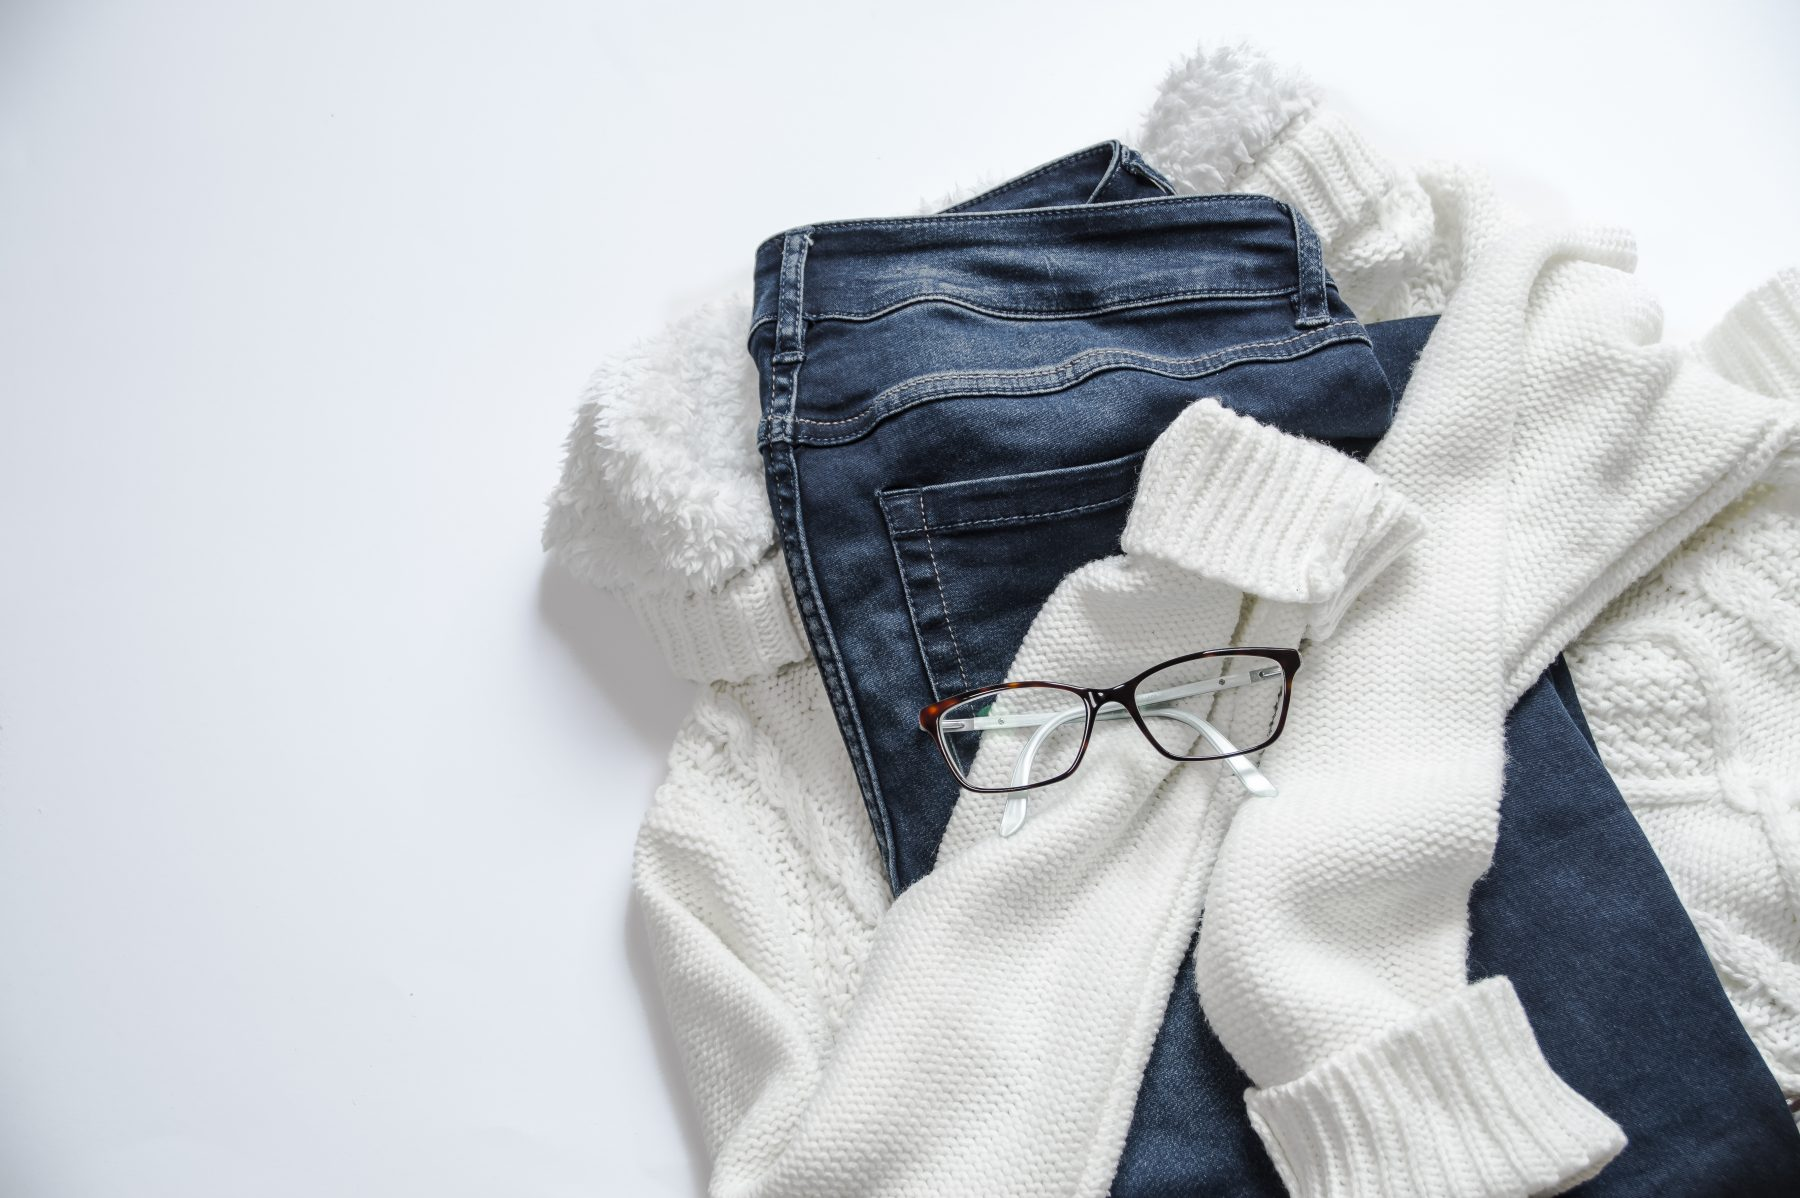 black-framed-eyeglasses-white-jacket-and-blue-denim-jeans